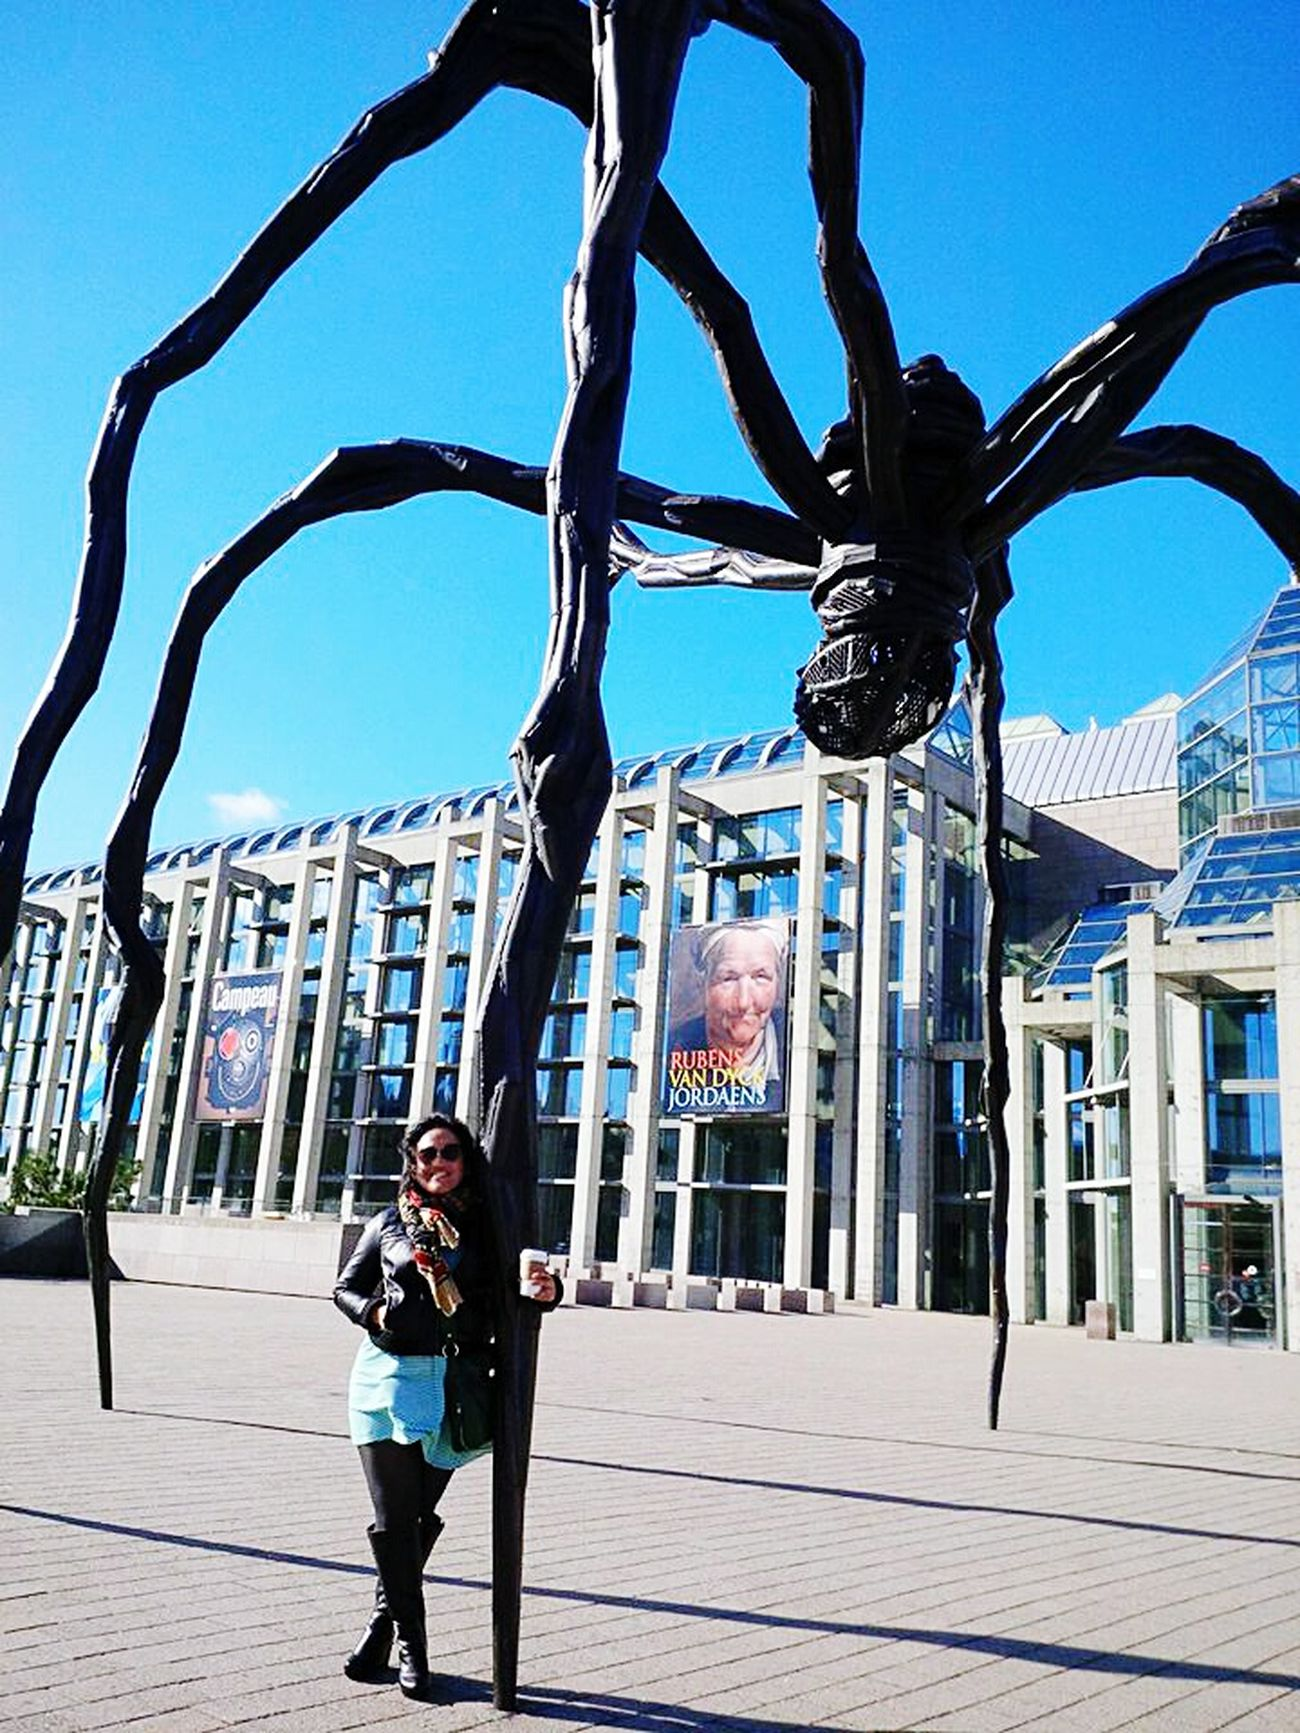 Ottawa Canada Spider National Gallery Of Art Fashionable Fashionista Fashion